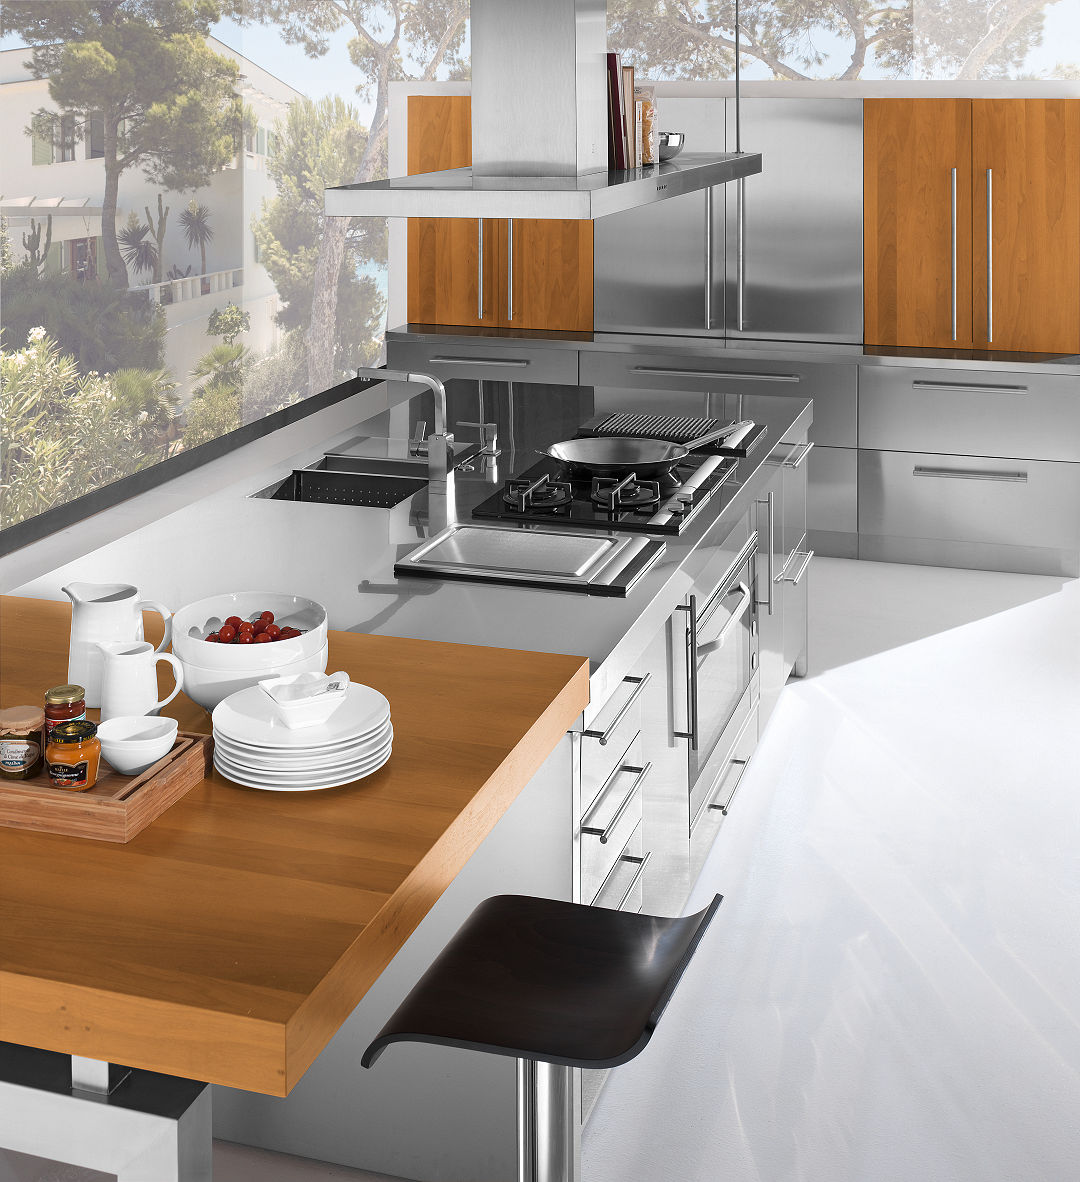 Arca Cucine Italy - Domestic stainless steel kitchens - 23 - Barn - 0006